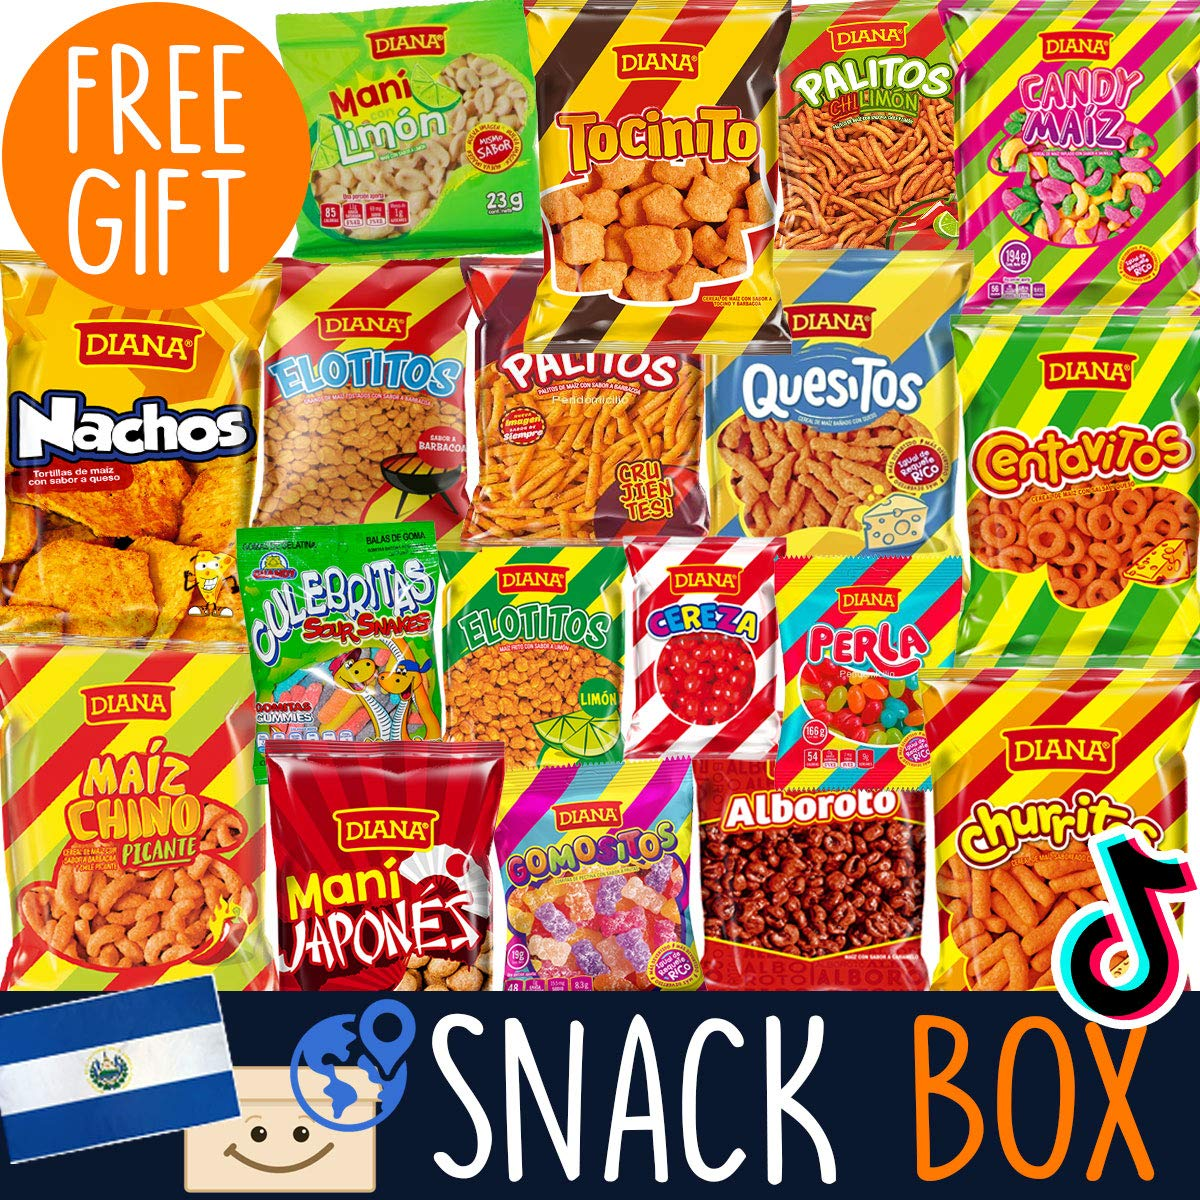 International Snack Box from Around the World + FREE Surprise! - Foreign Munchies Snack Mix from El Salvador - Weird Food - Exotic Snacks Variety Pack for Adults & Kids - Subscription Boxes